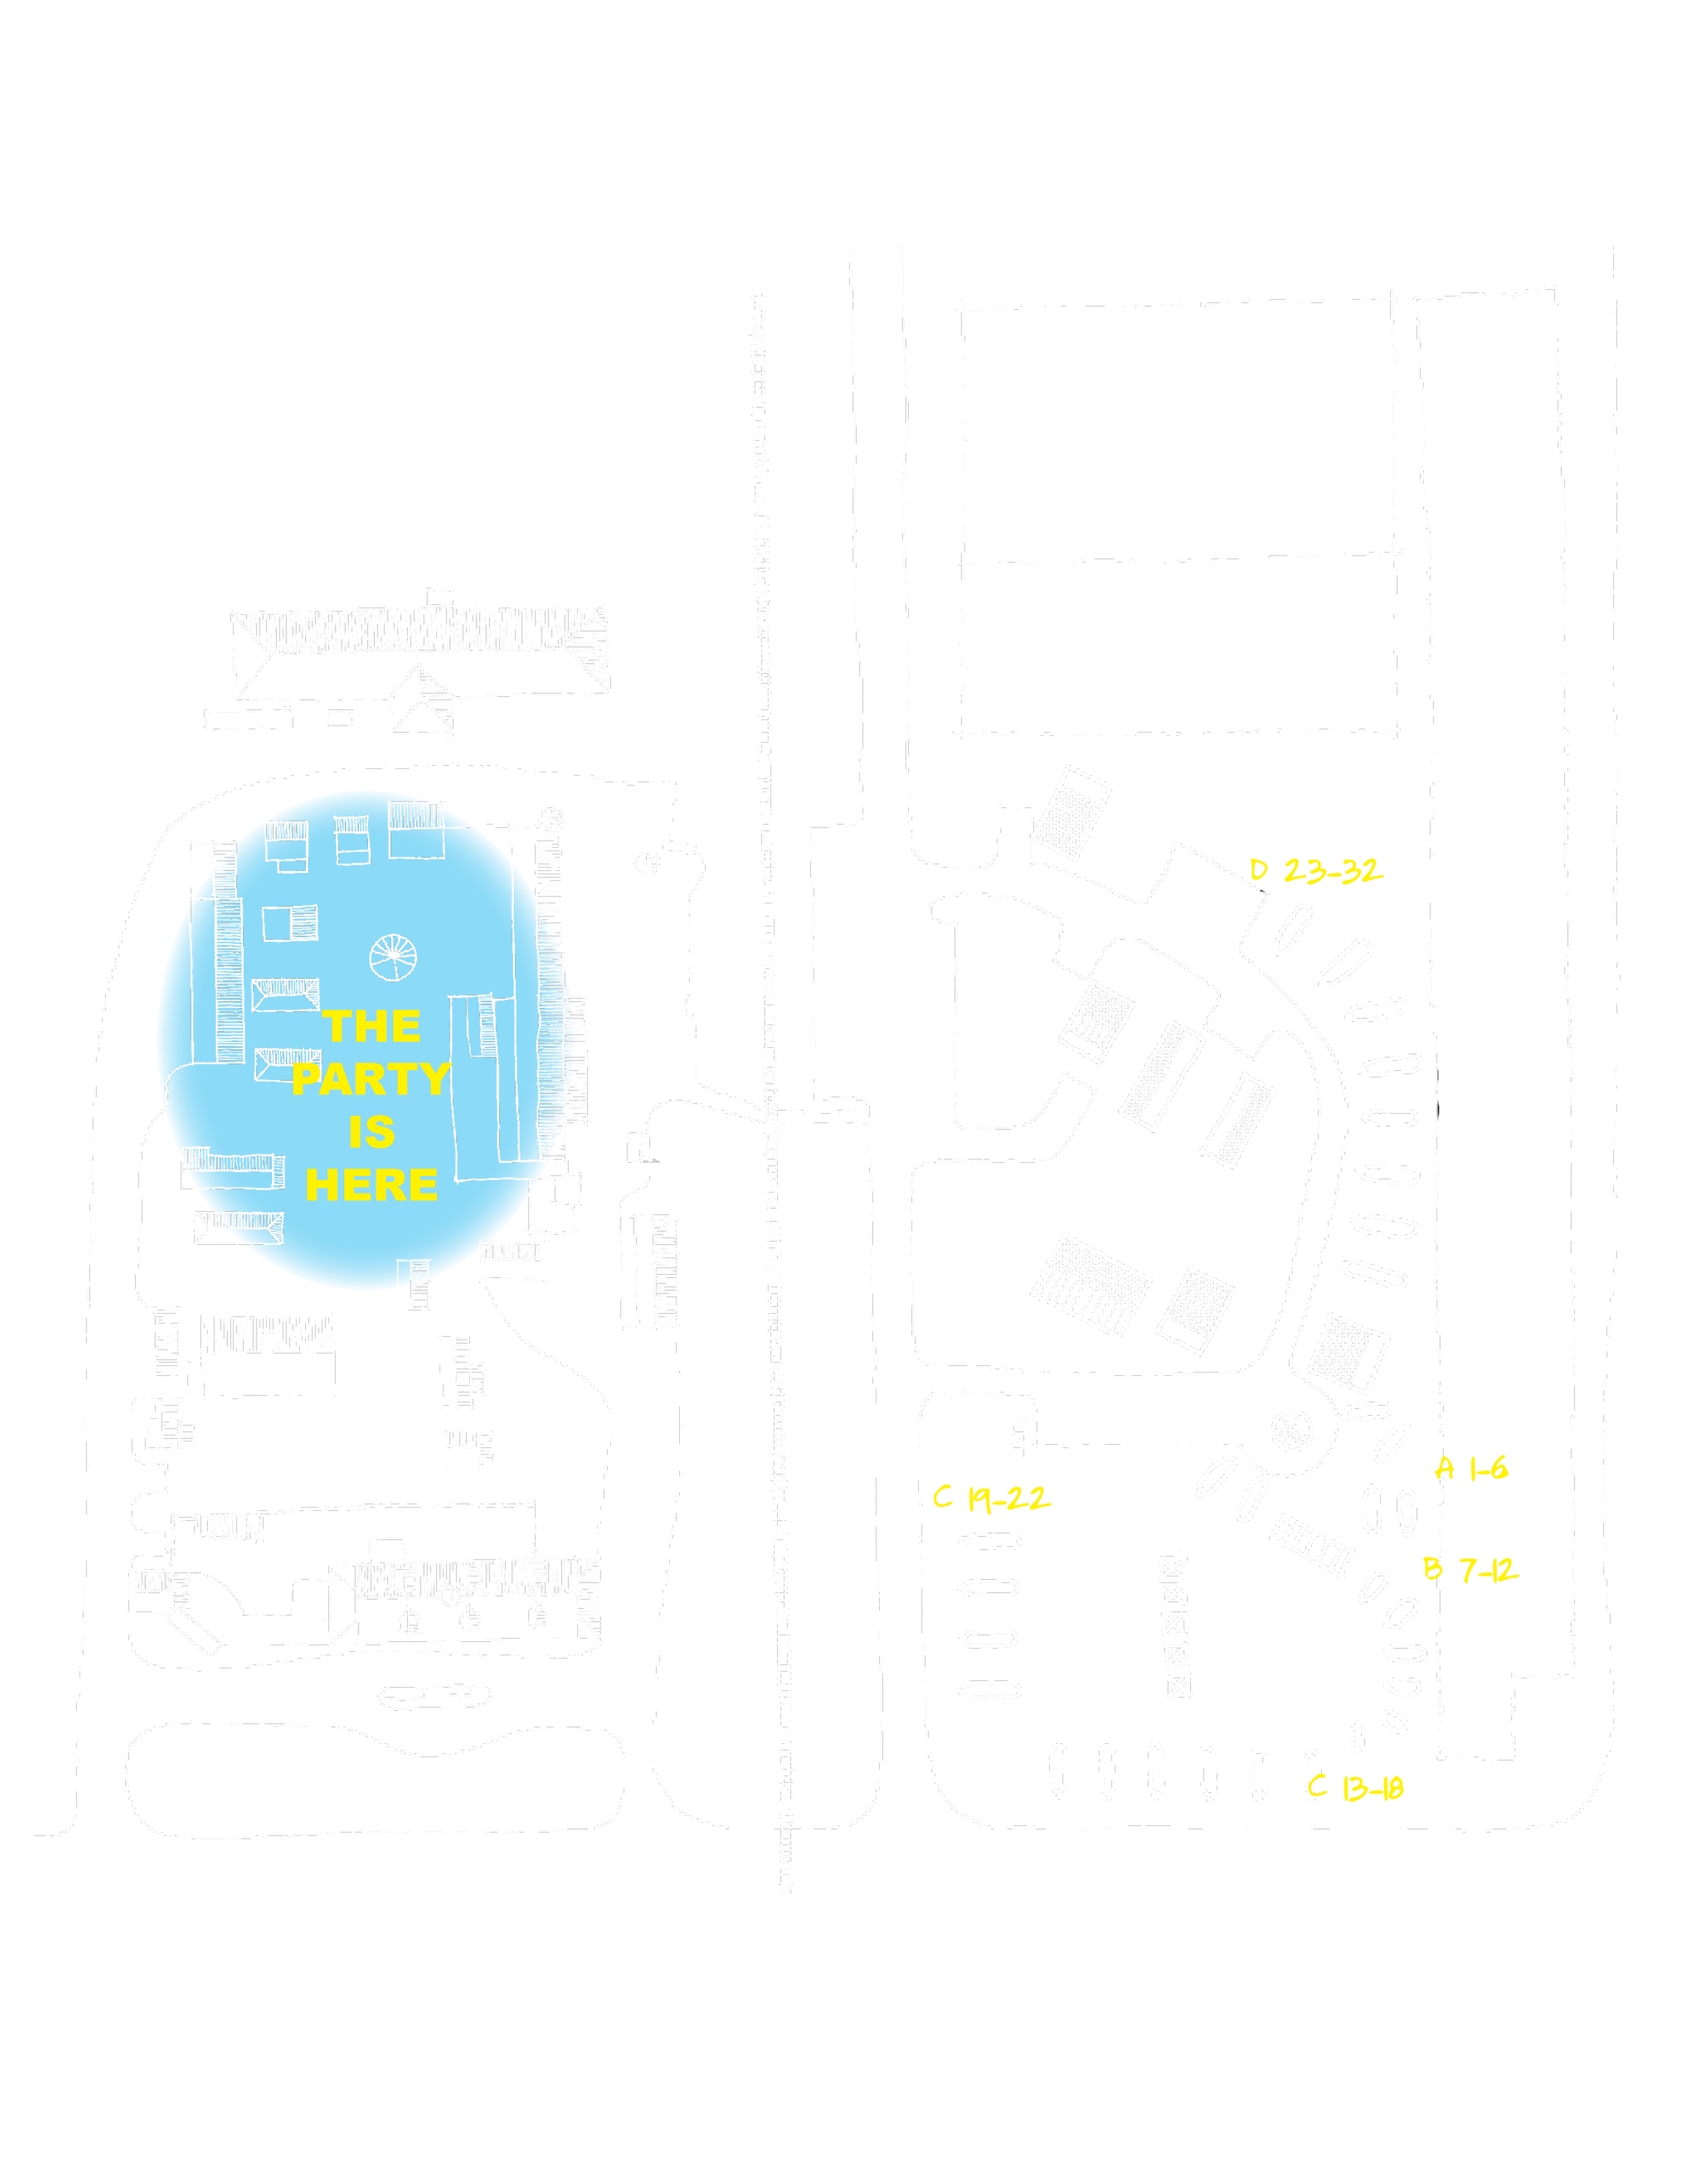 Official Burdine Blues and Greens Event Map of the Shackdale and The Shack Up Inn compound.